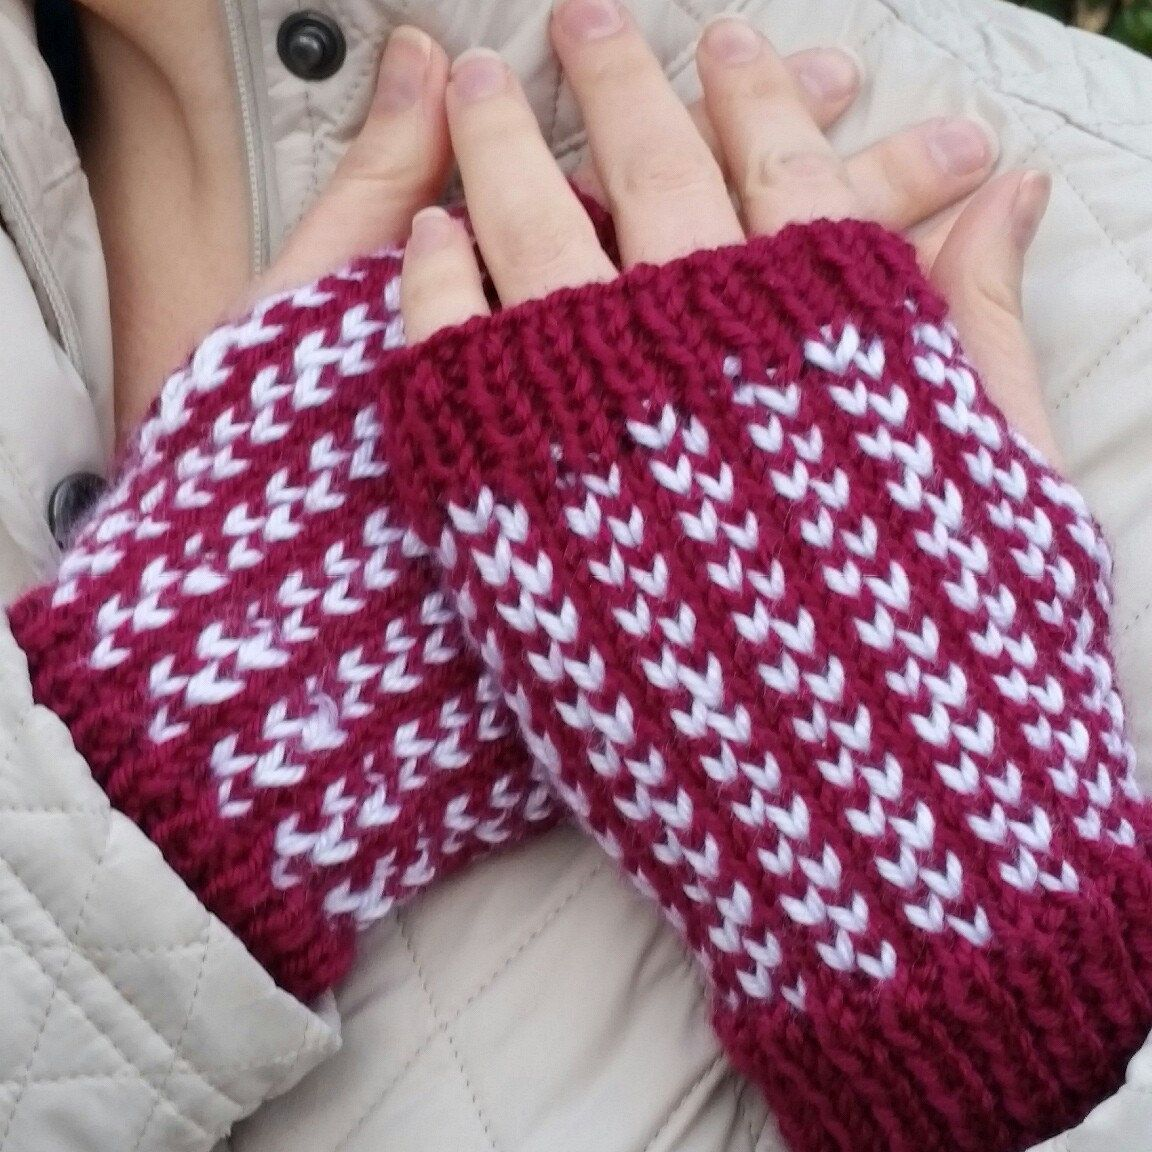 This Valentine's weekend, knit up a pair of the Two Hearts Handwarmers. // Knit flat, easy colorwork, ultra cozy